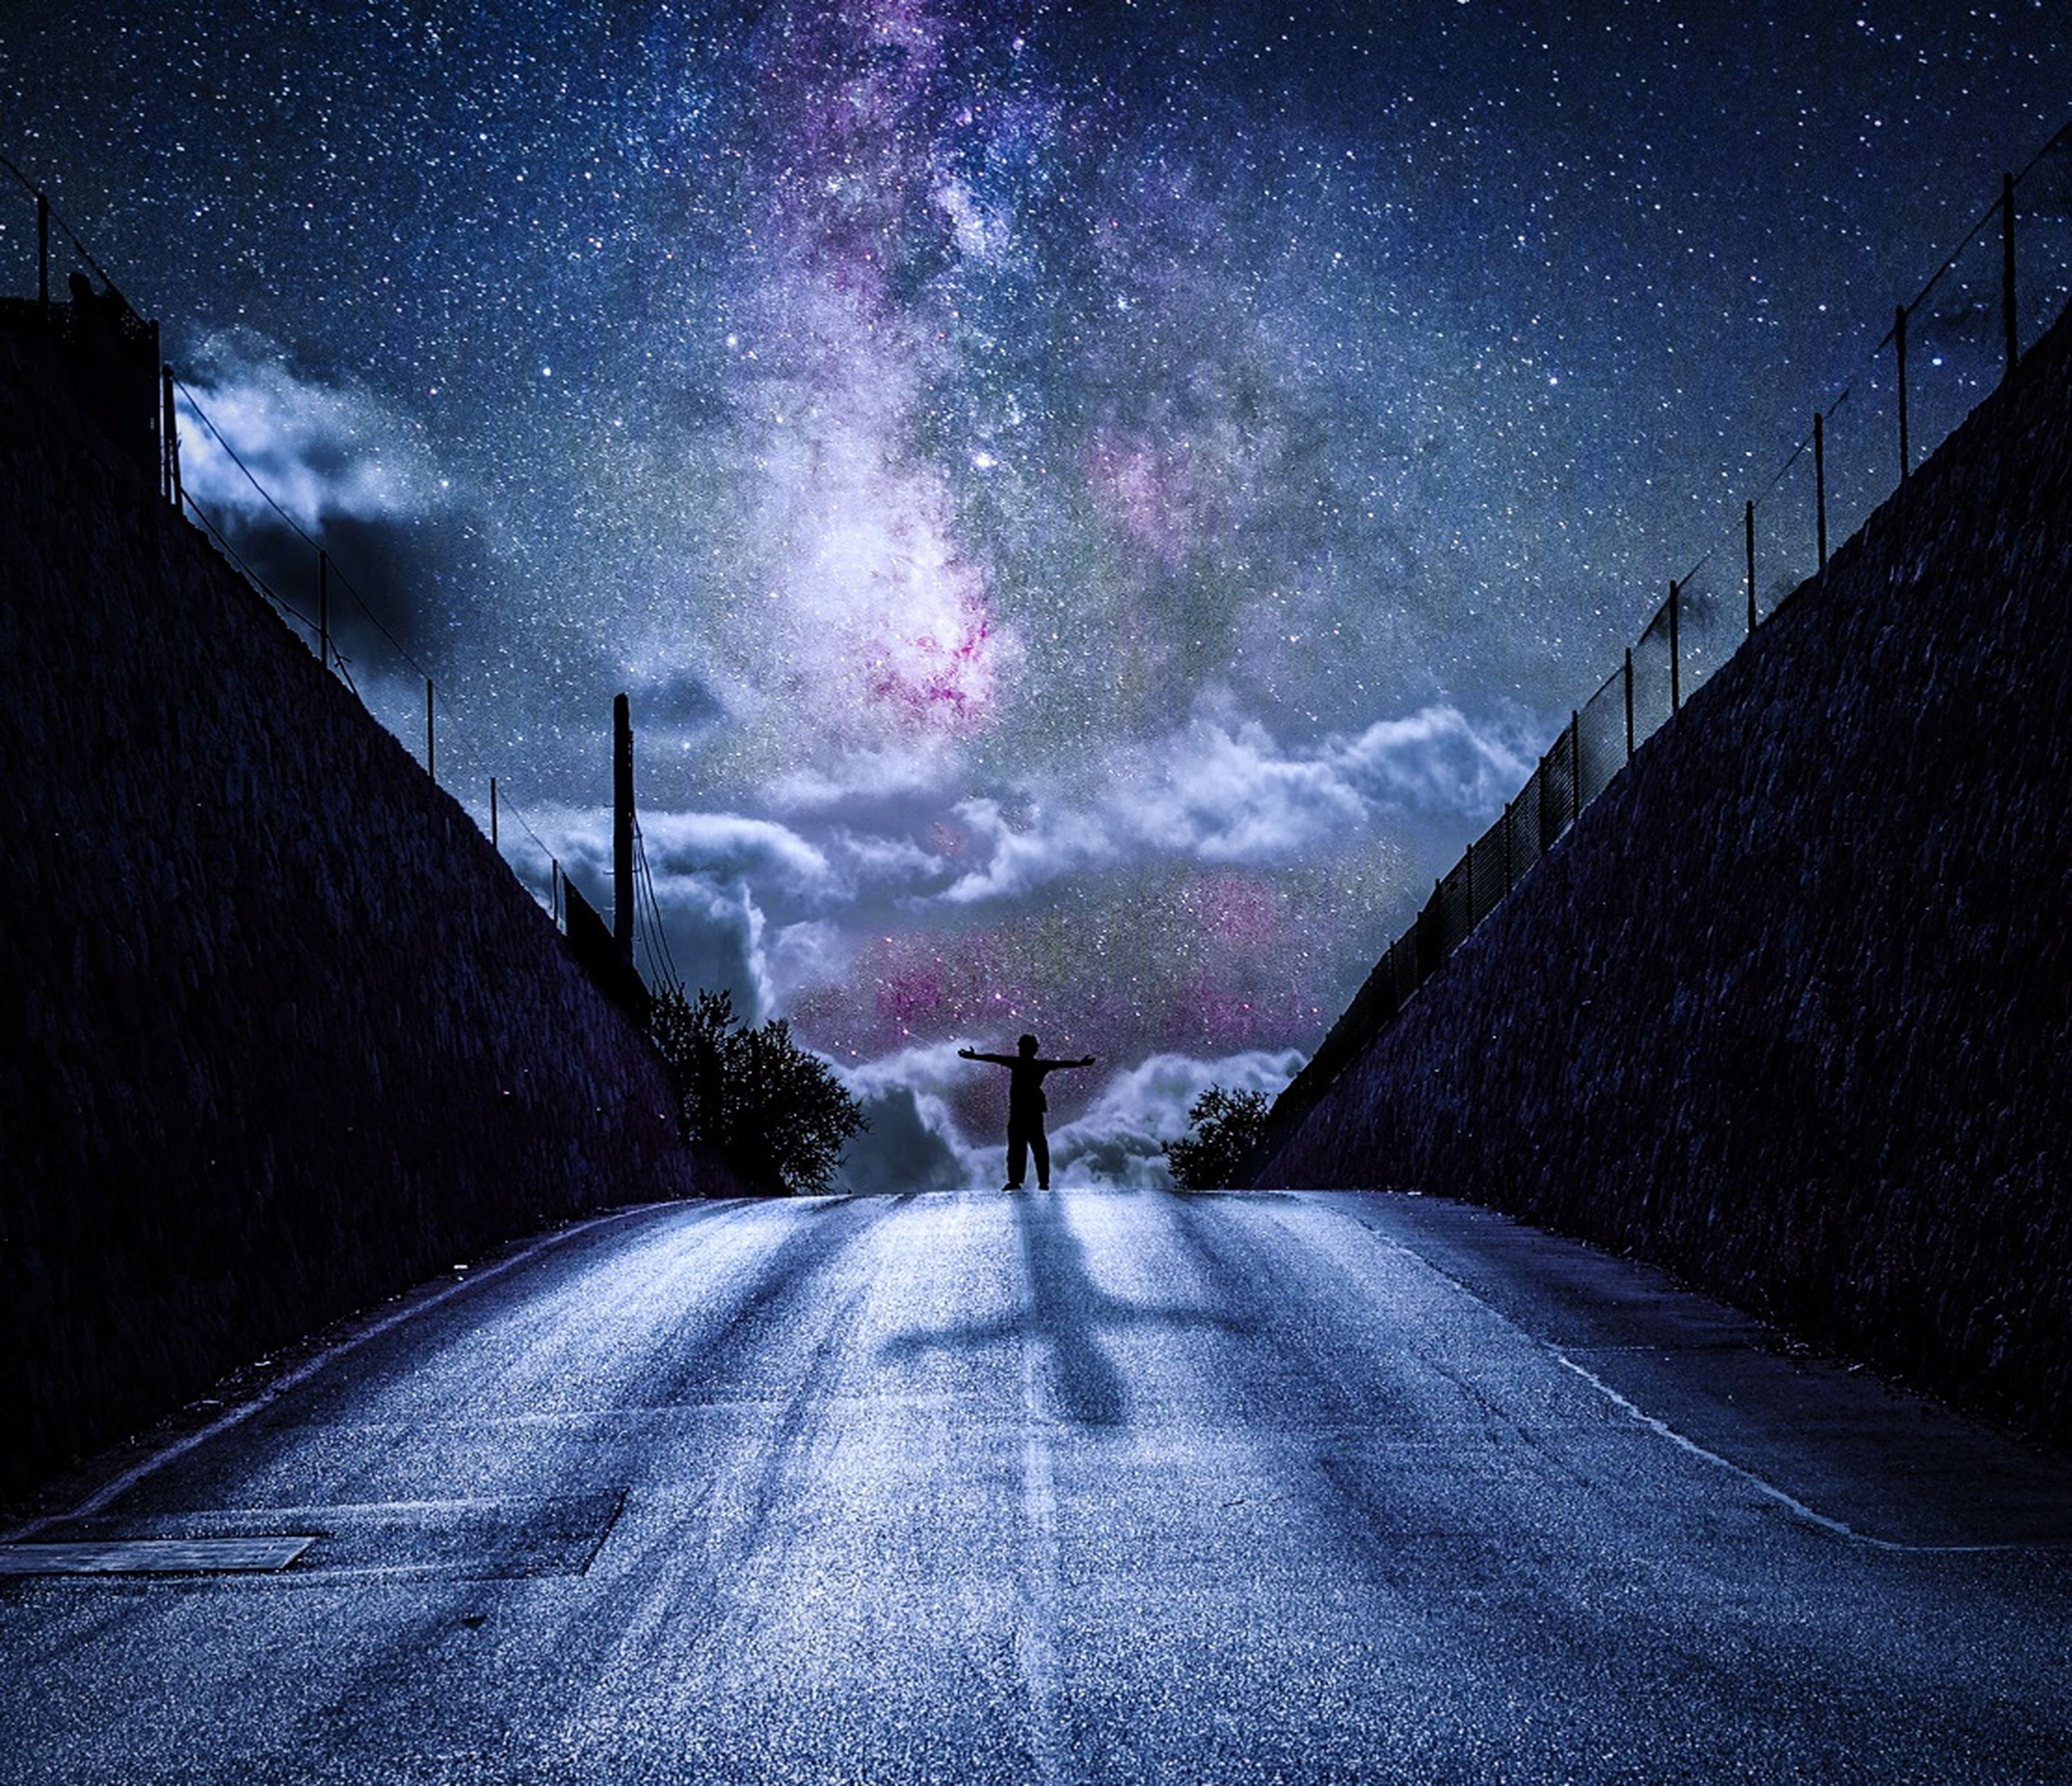 the way forward, night, sky, road, diminishing perspective, illuminated, street, weather, vanishing point, street light, cloud - sky, lifestyles, silhouette, rear view, walking, men, unrecognizable person, dusk